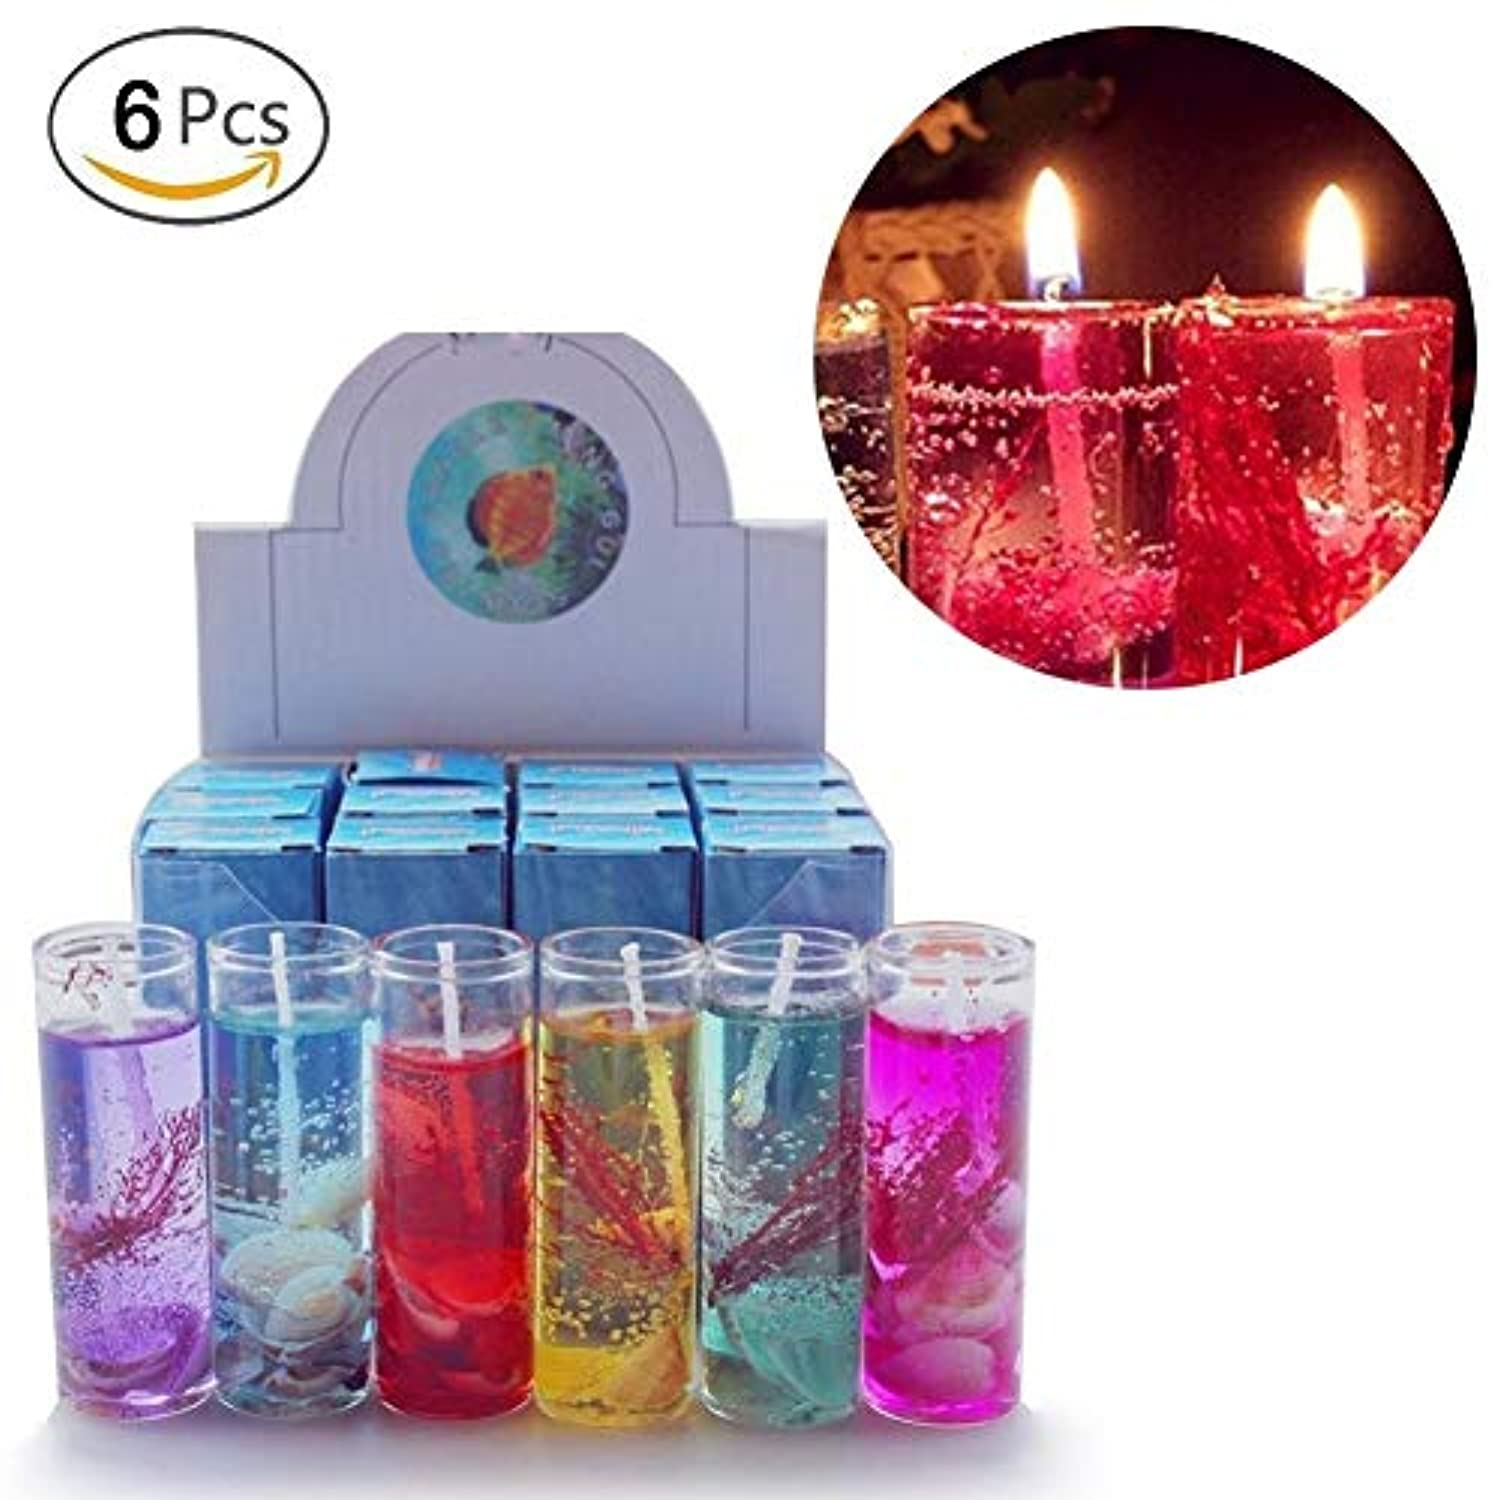 Hacloser 6Pcs Ocean Jelly Aromatherapy Candles Wedding Valentines Romantic Scented Candle, Random Colour